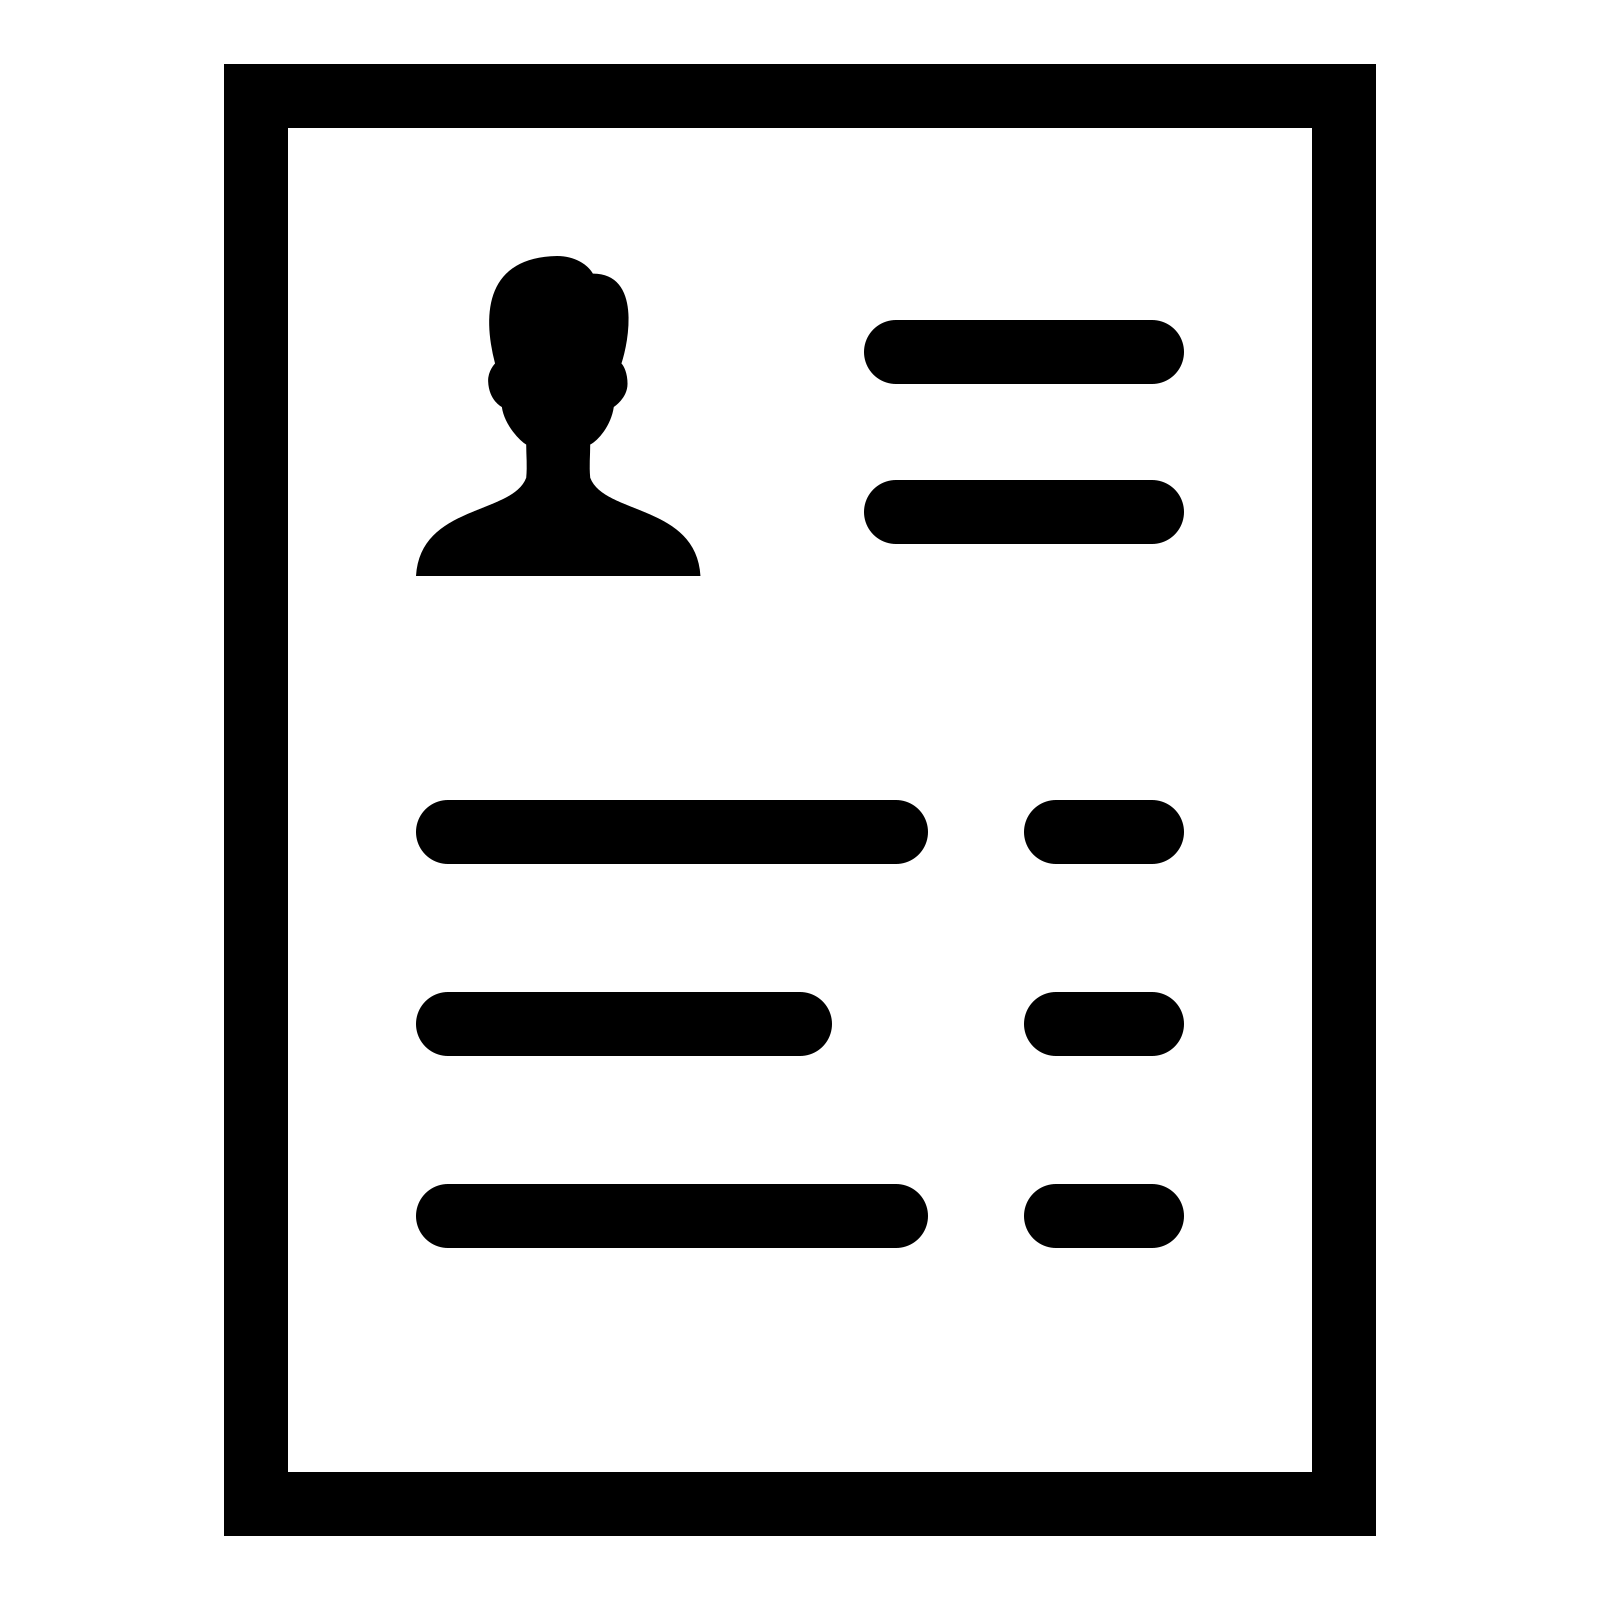 Resume Icons Png.